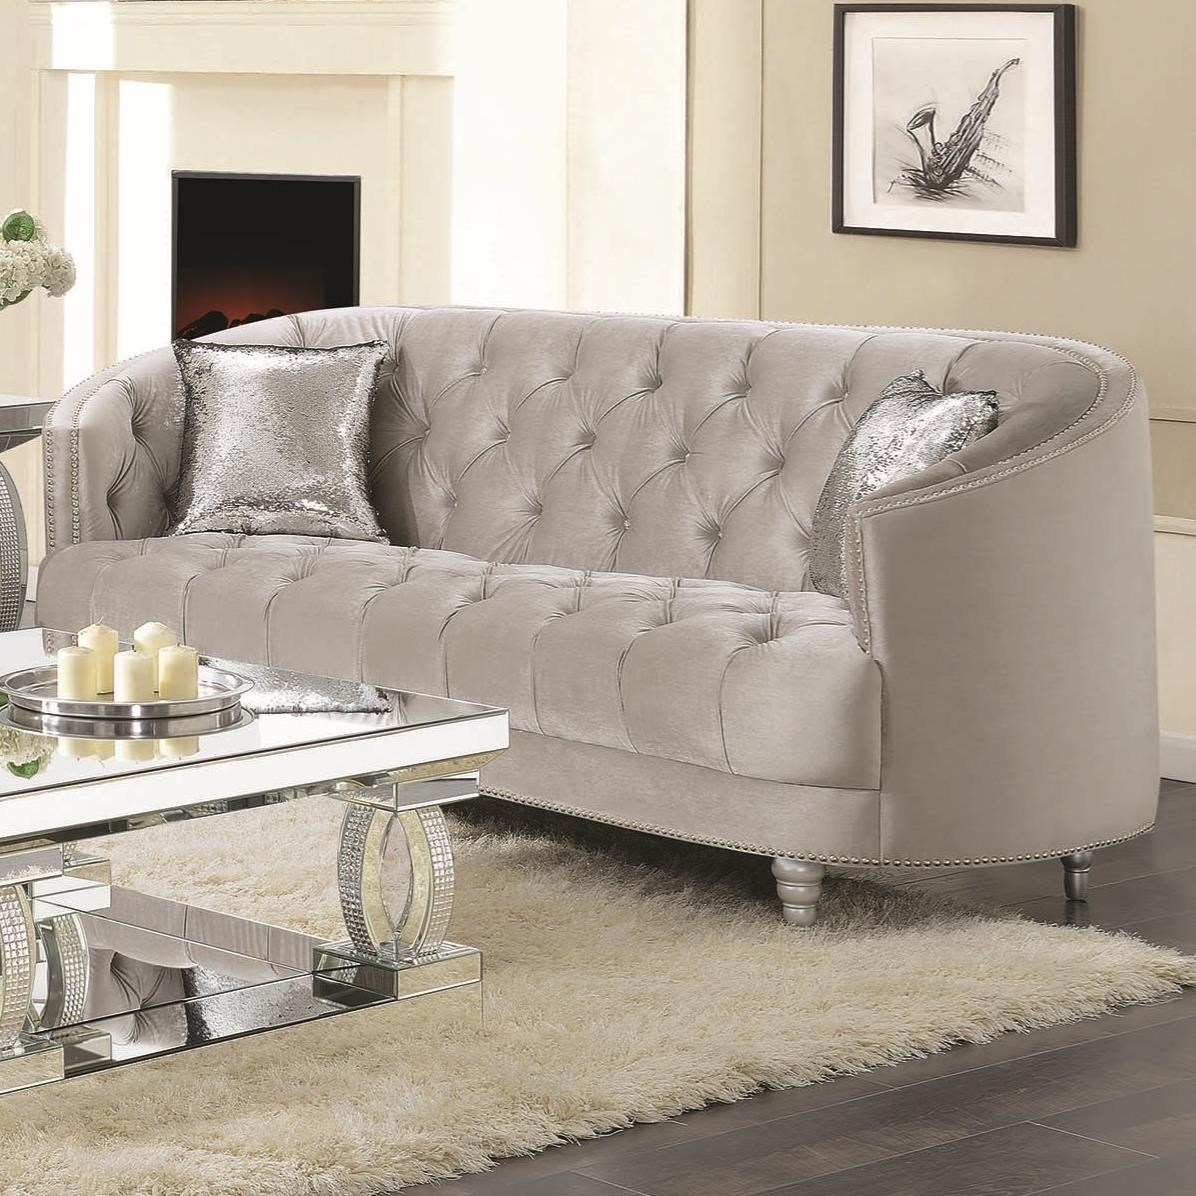 Avonlea Sofa by Coaster at Prime Brothers Furniture